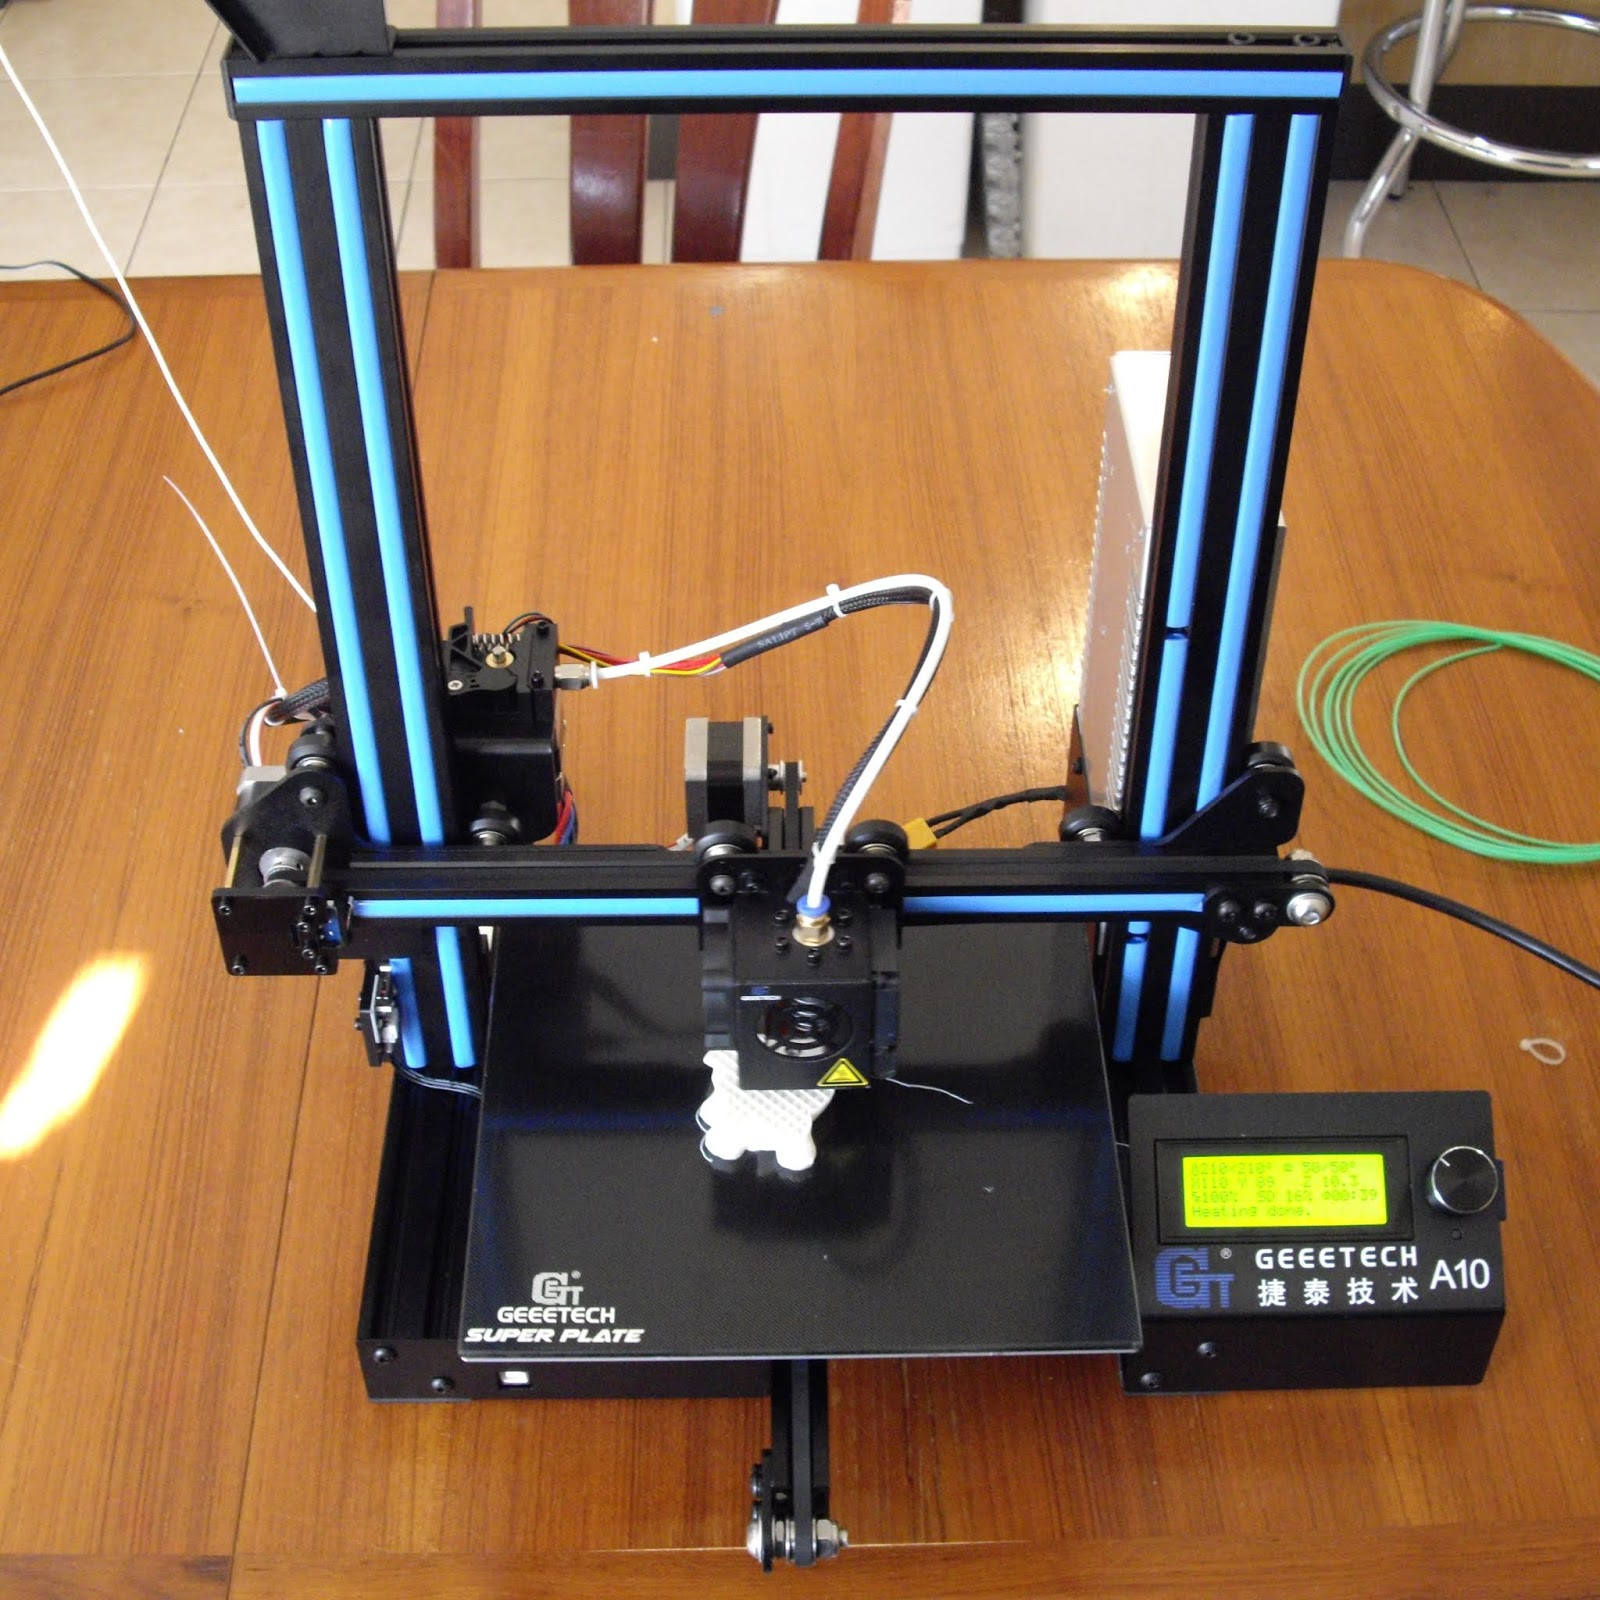 PEZZER'S 3D PRINTER BLOG: GeeeTech A10 Review